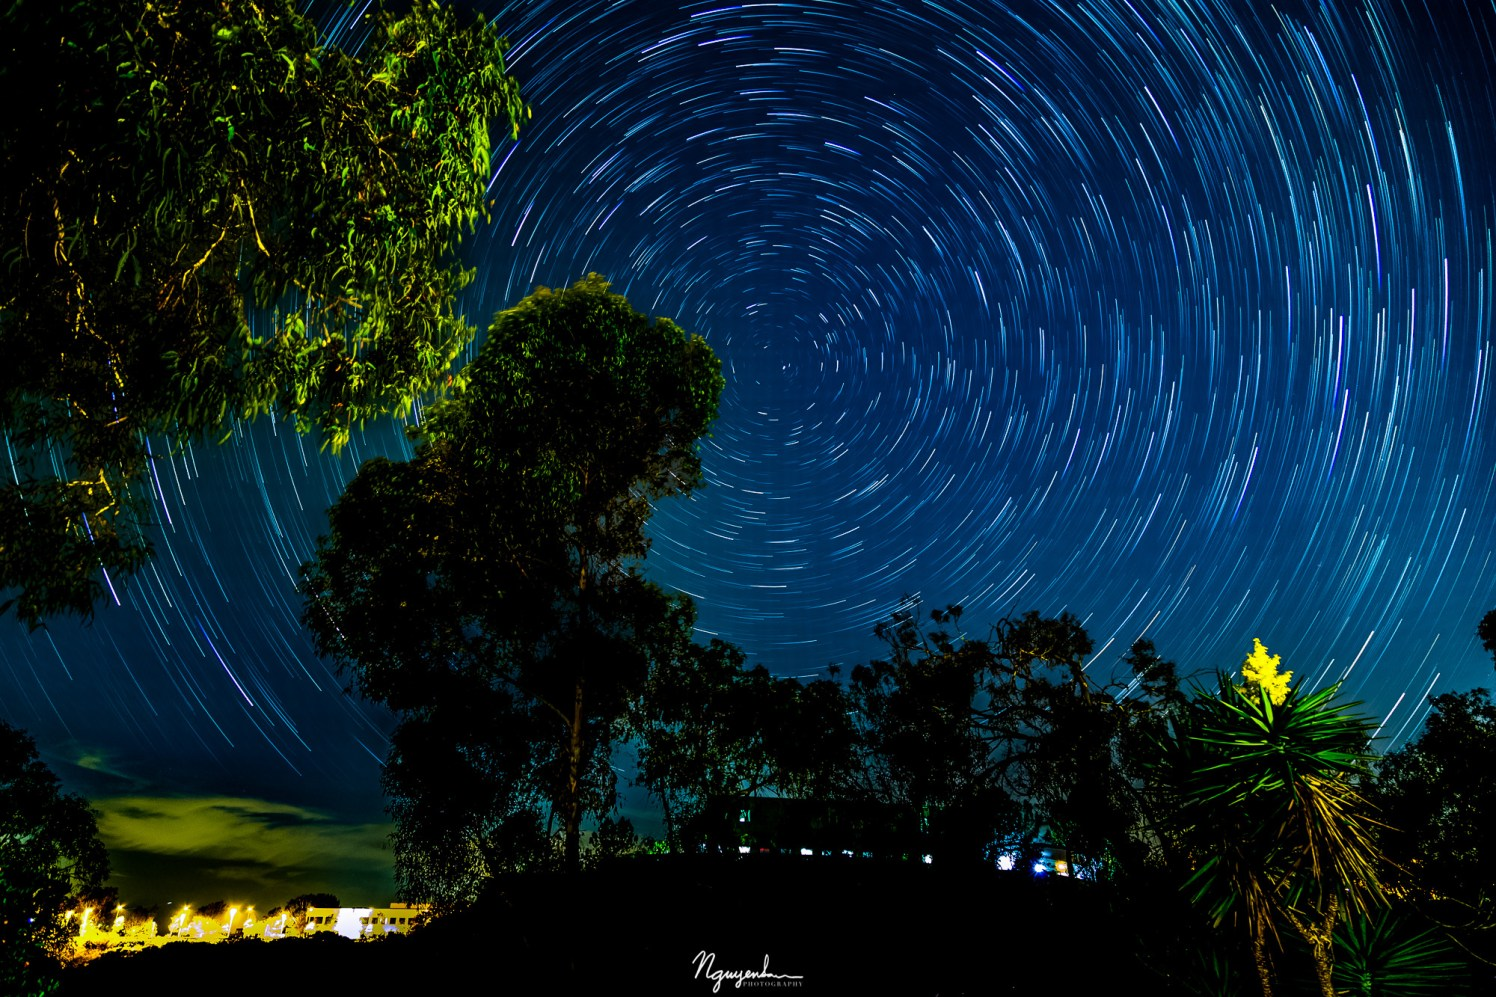 the star trails show how the earth spins about its axis